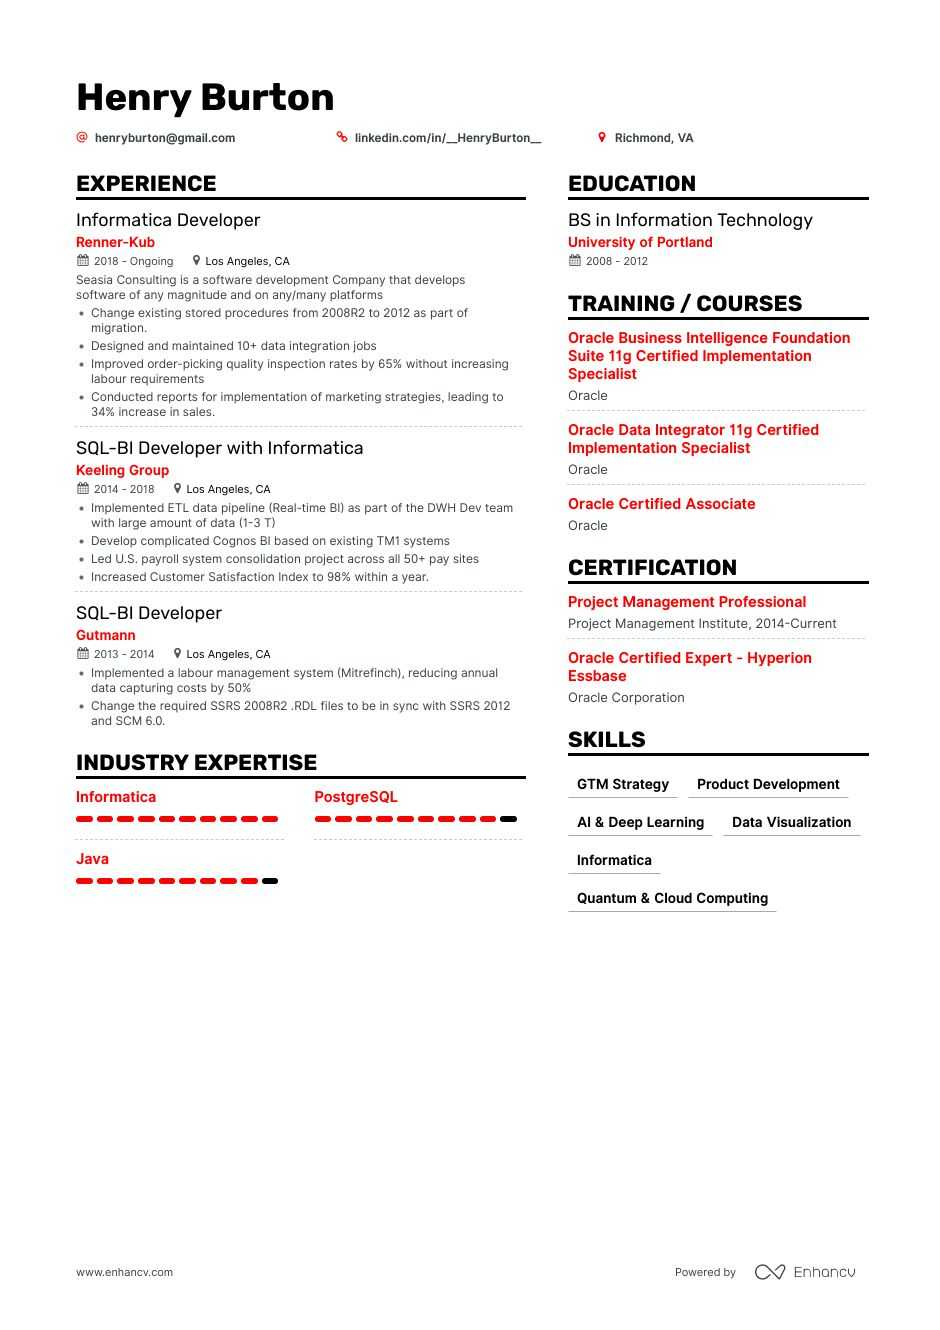 informatica resume examples inside to tips enhancv developer for years experience dental Resume Informatica Developer Resume For 5 Years Experience